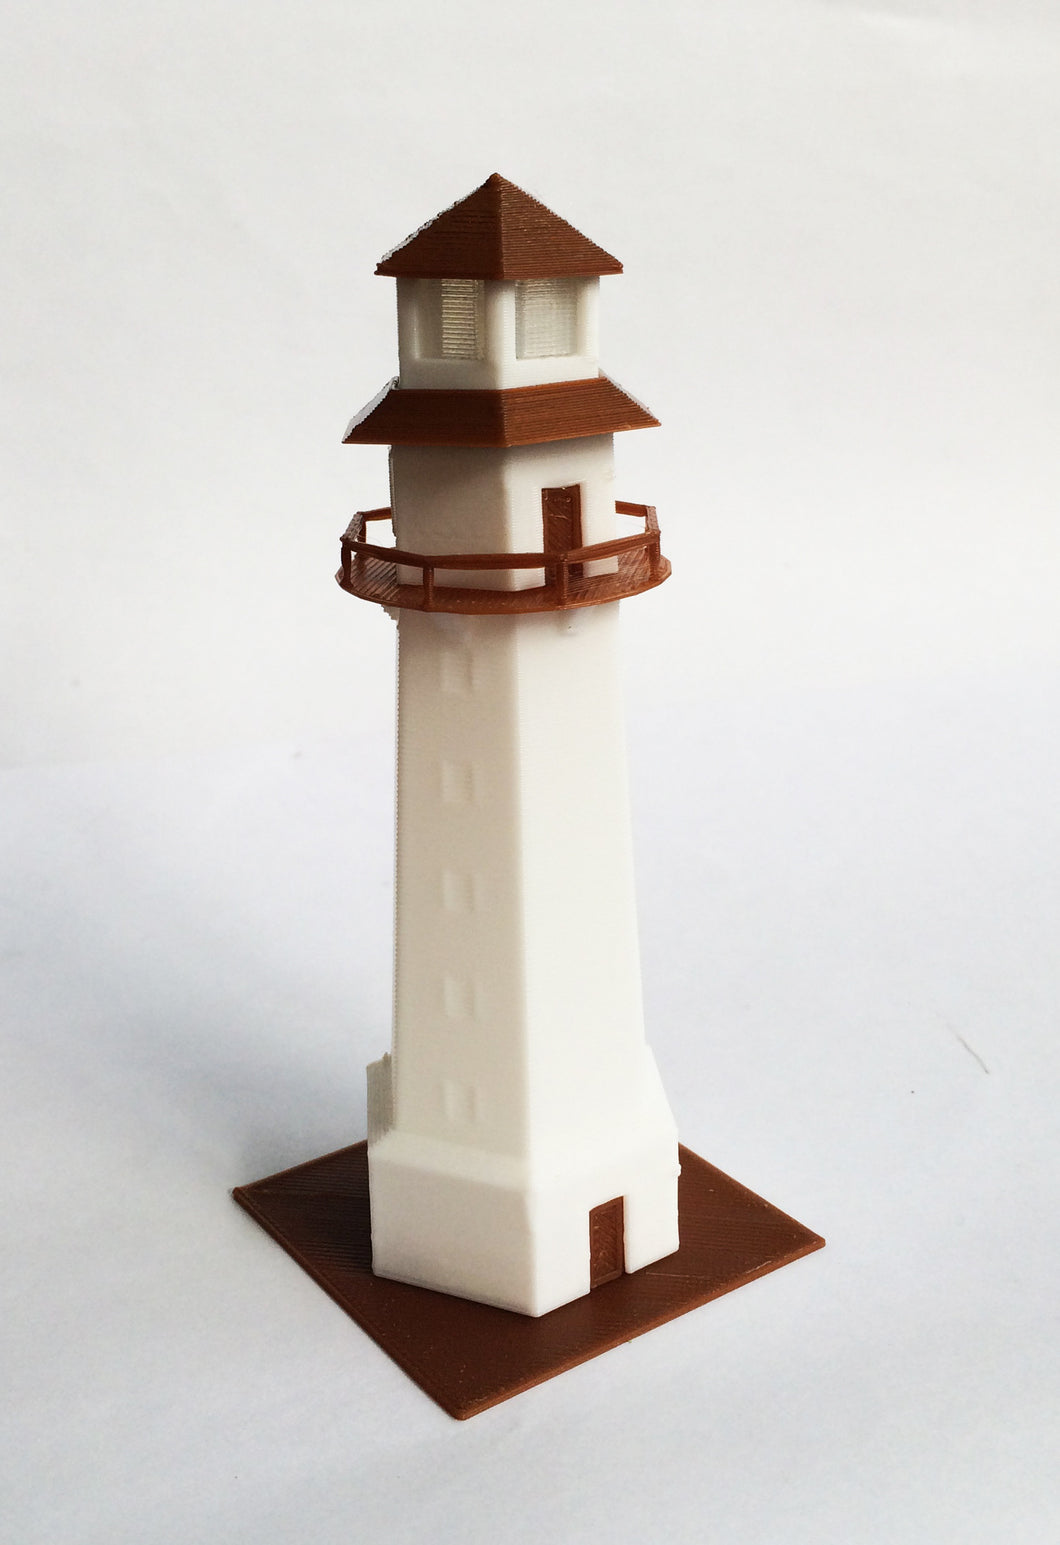 Building Country Lighthouse Z Scale 1:220 Outland Models Train Railway Scenery